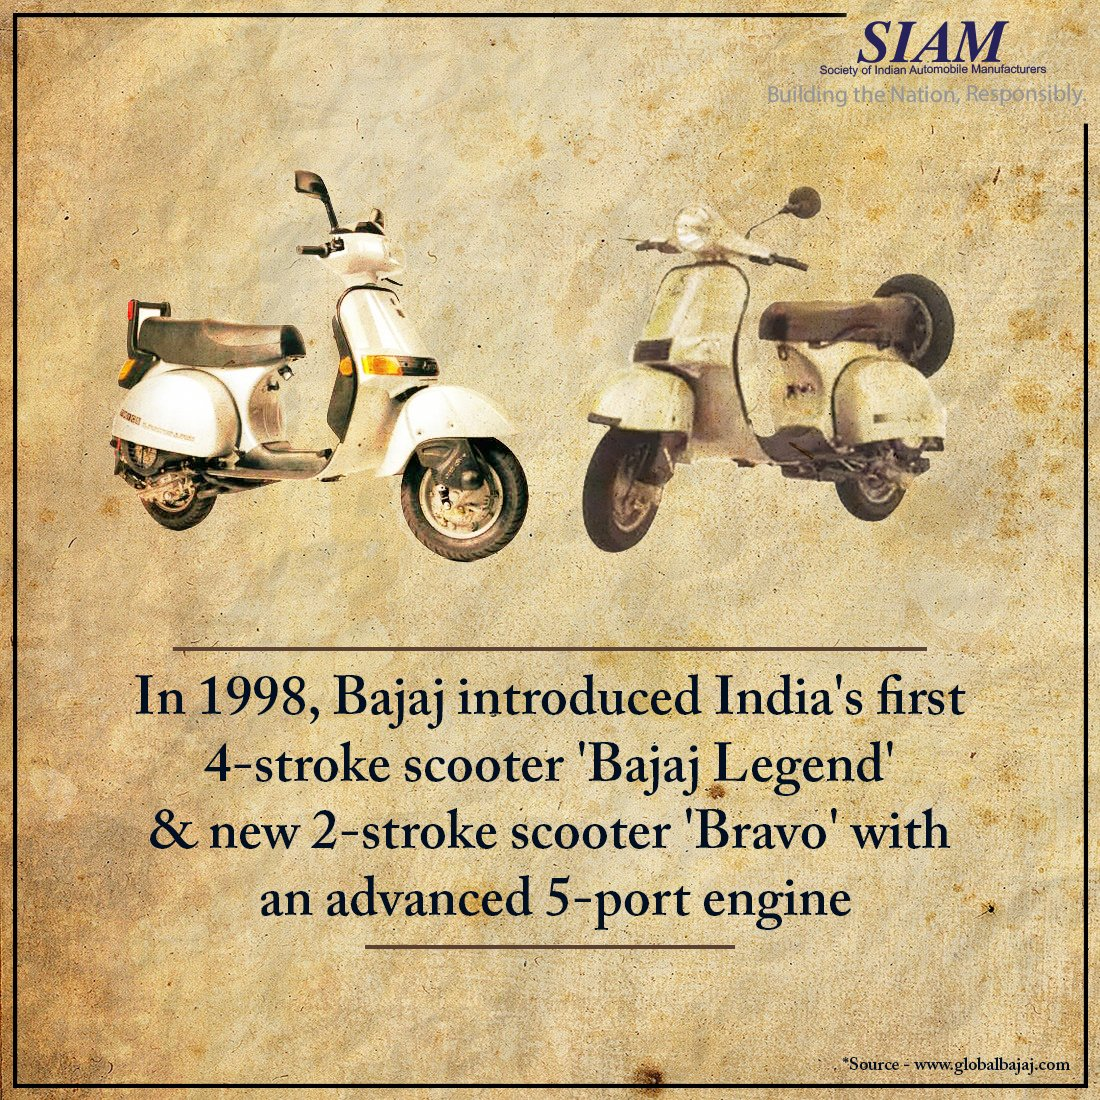 SIAM India on Twitter: